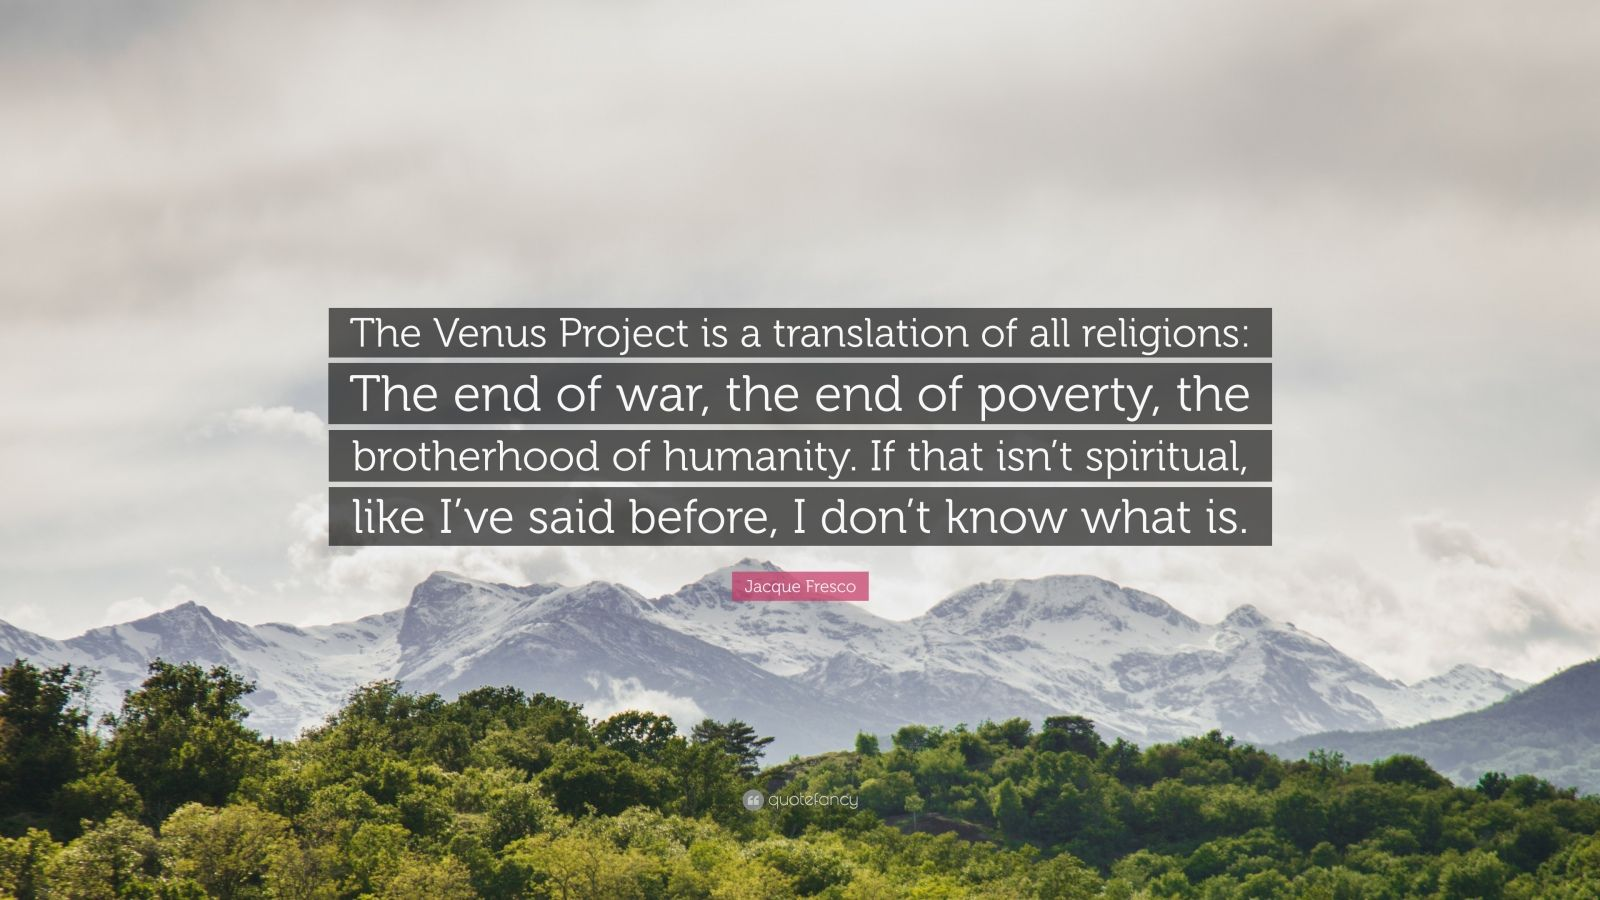 """Jacque Fresco Quote: """"The Venus Project is a translation of all religions: The end of war, the end of poverty, the brotherhood of humanity. If that isn't spiritual, like I've said before, I don't know what is."""""""